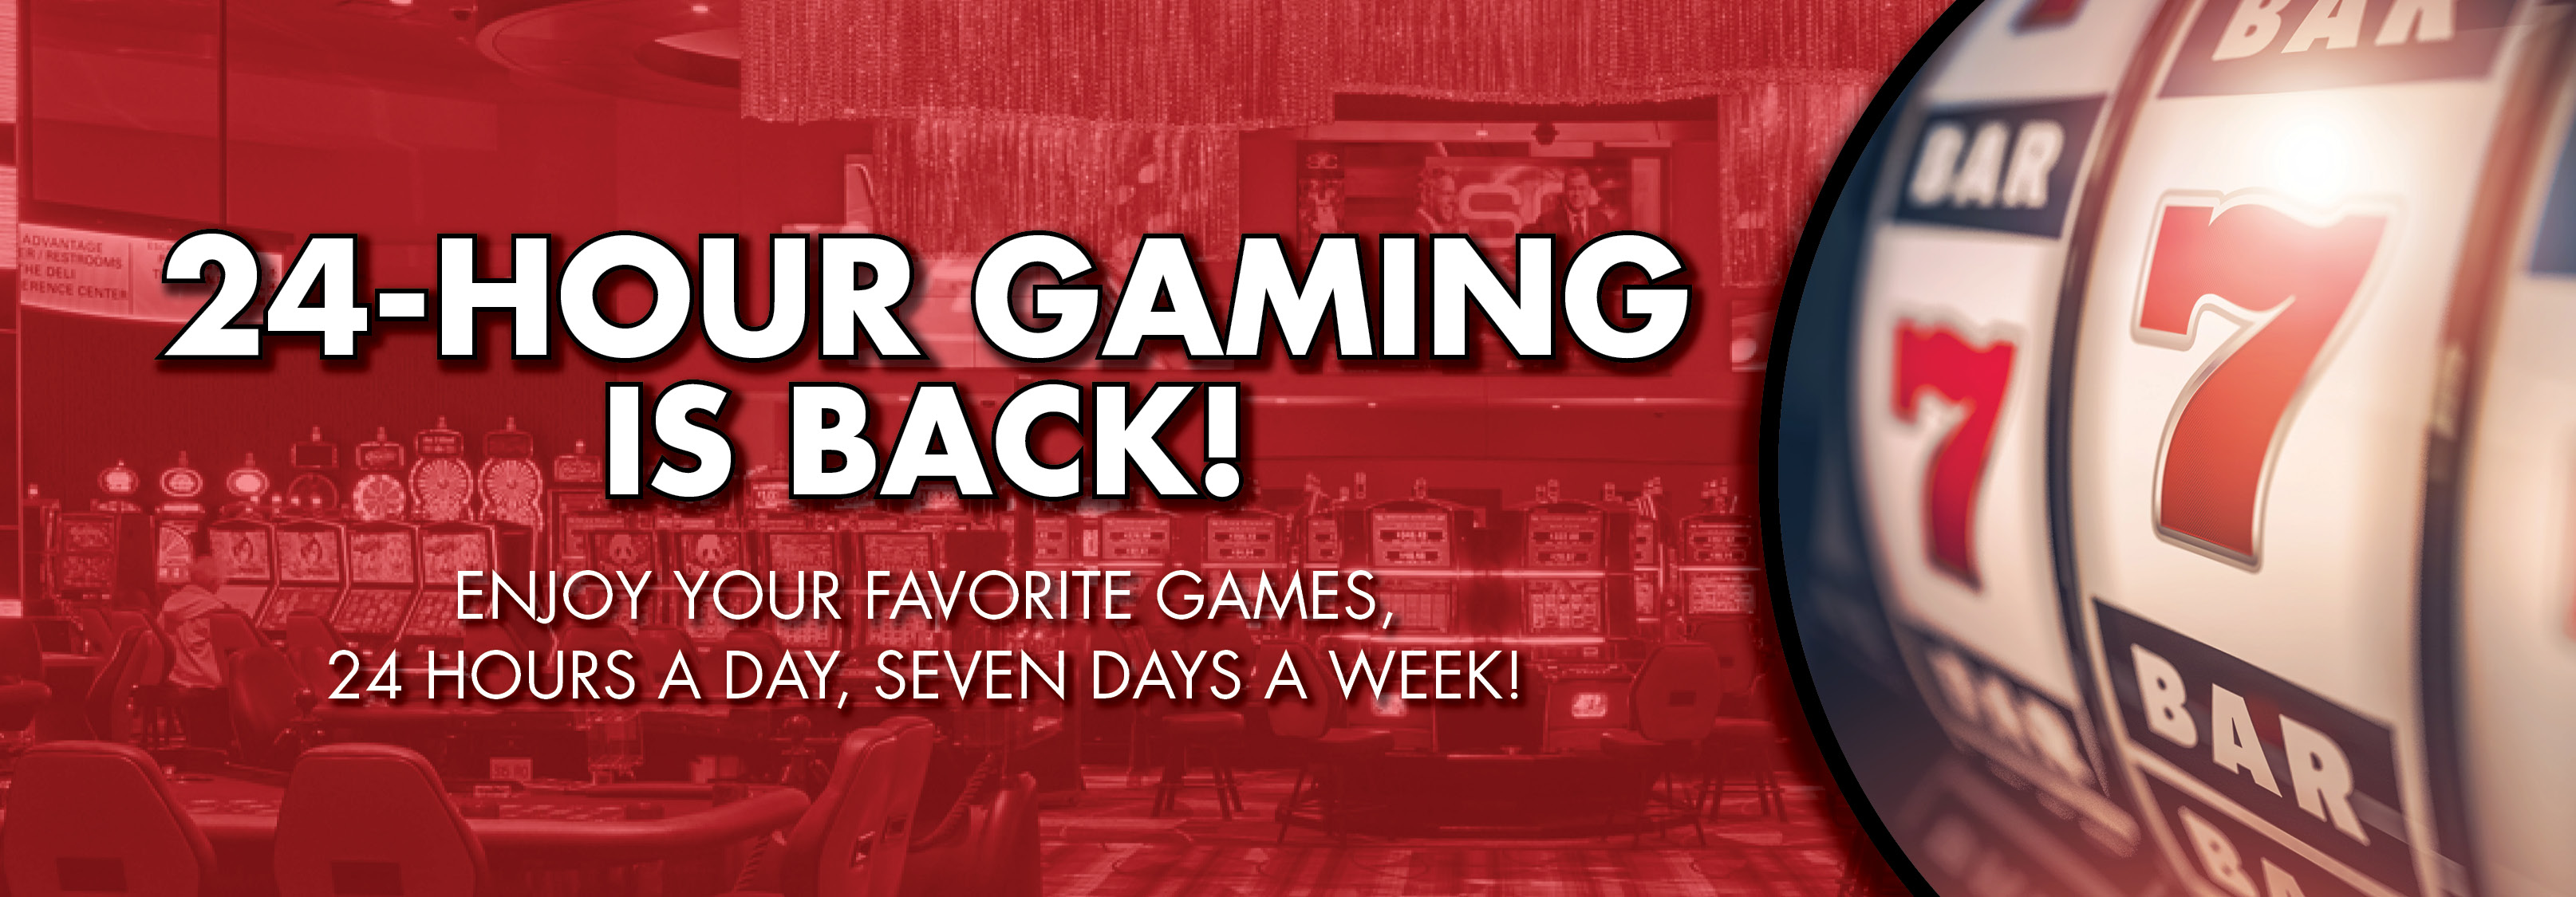 24-HOUR GAMING IS BACK! Play your favorite slot and table games 24 hours a day, 7 days a week!